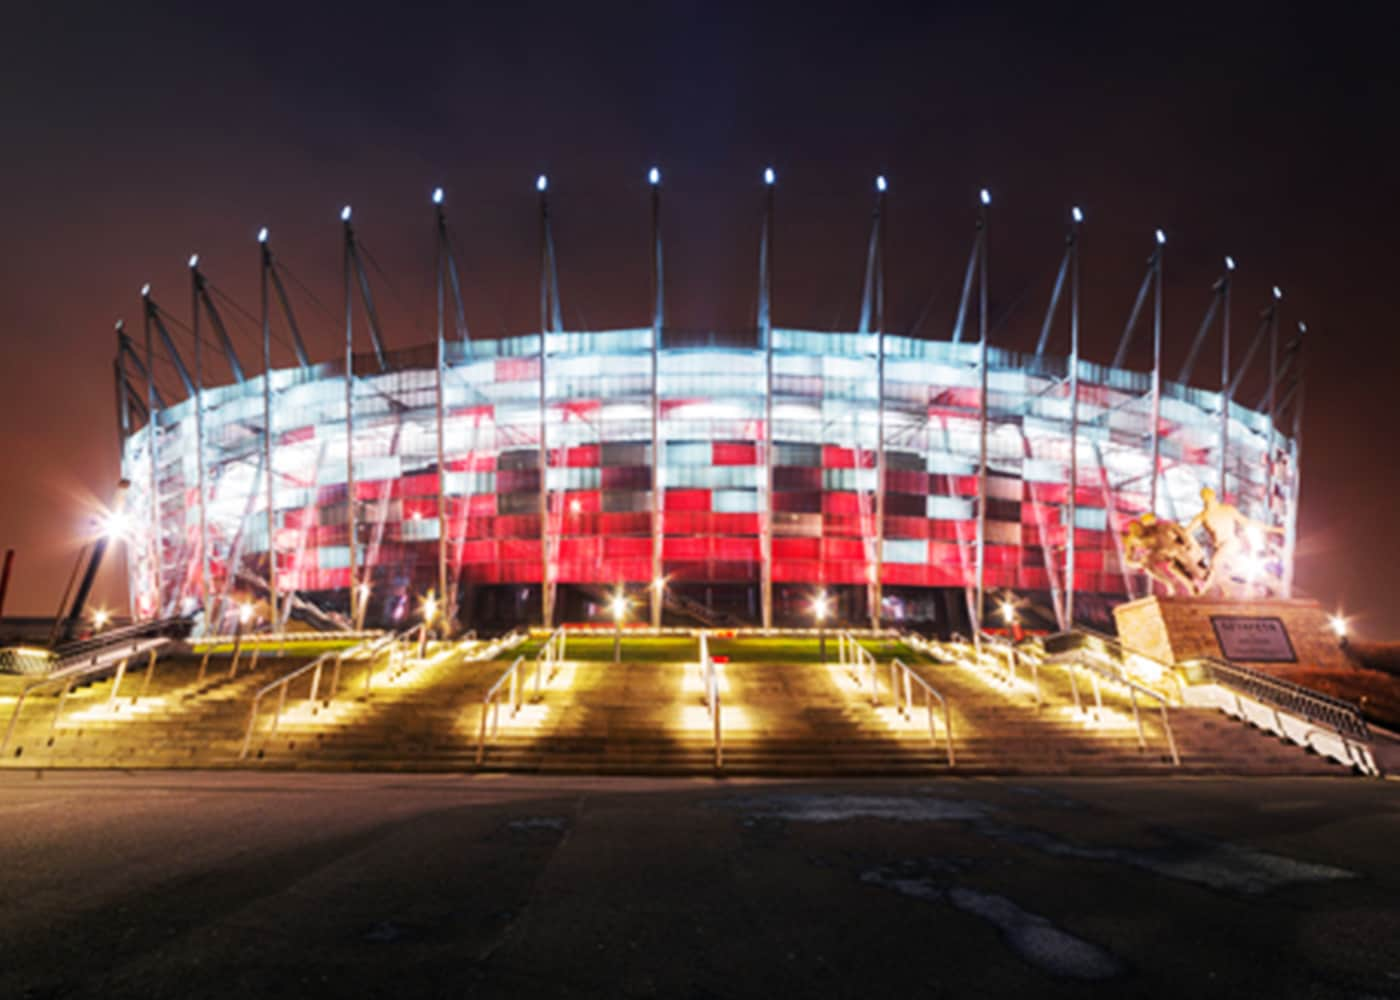 The National Stadium, in Warsaw, lit up at night